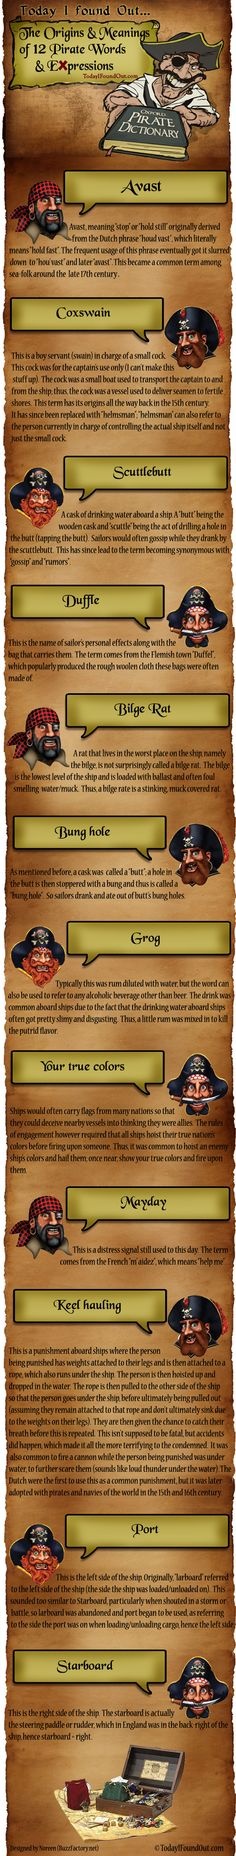 Talk Like a Pirate | The Origins and Meanings of 12 Pirate Words and Expressions